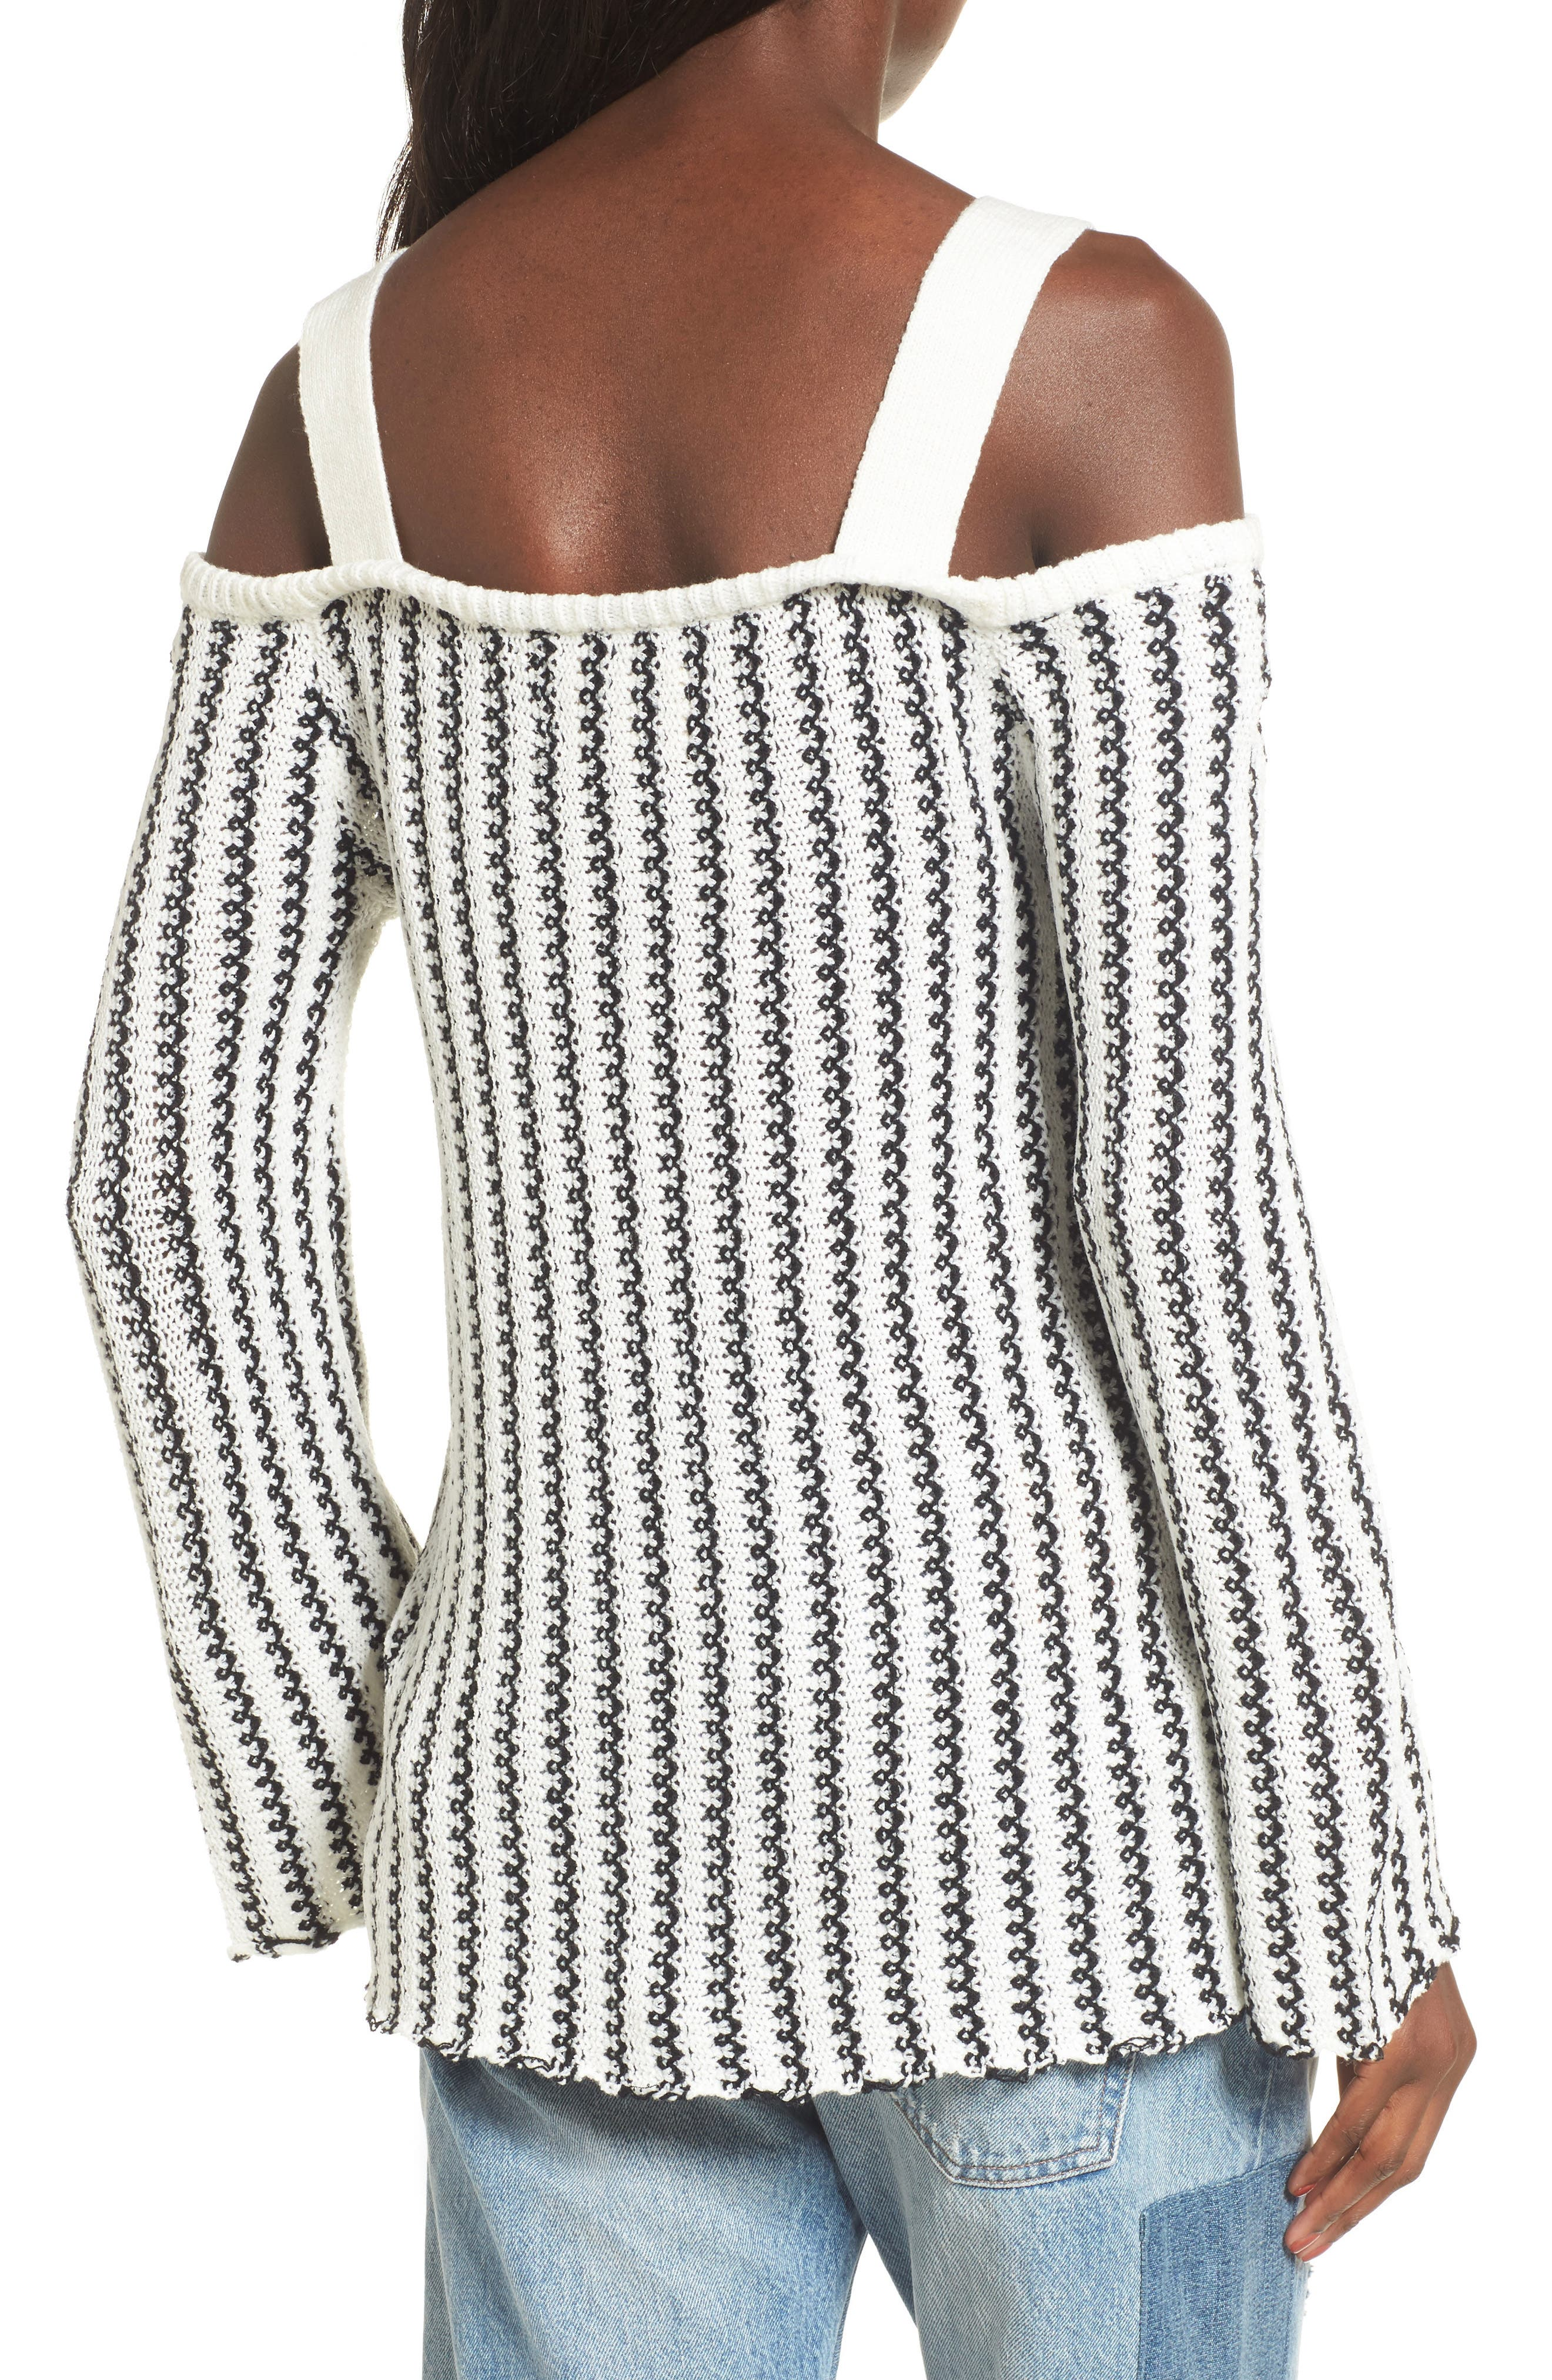 Buckle Strap Sweater,                             Alternate thumbnail 2, color,                             900